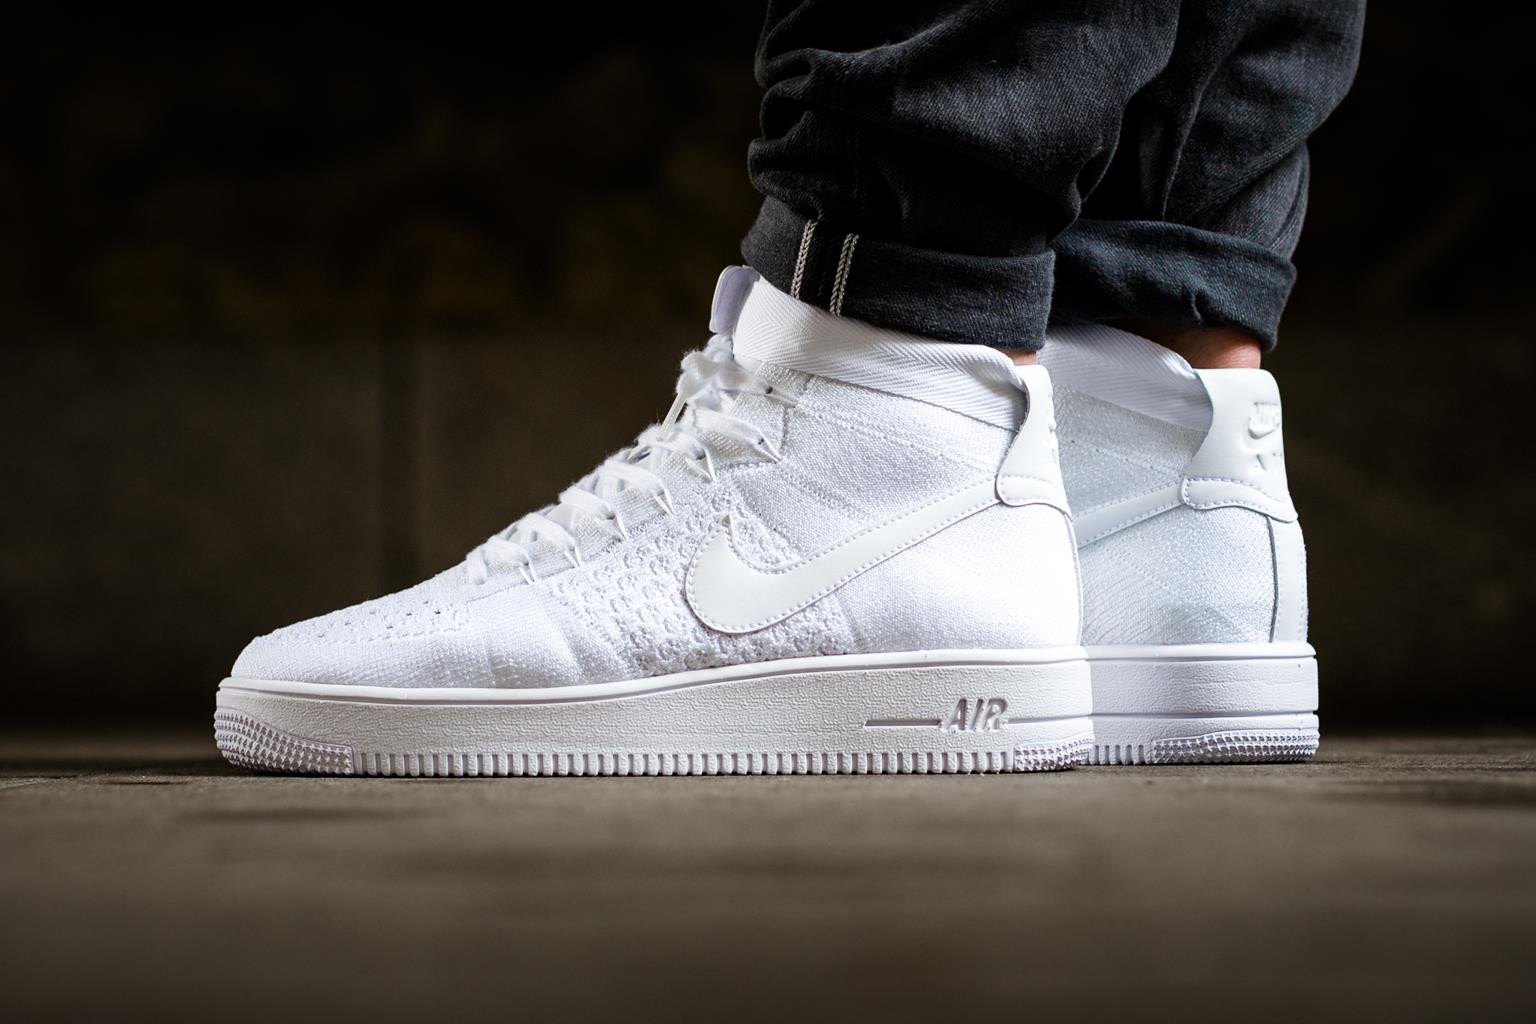 9eef3b9f2c8c2 air force 1 triple white Shop Nike Air Force 1 shoes at Foot ...